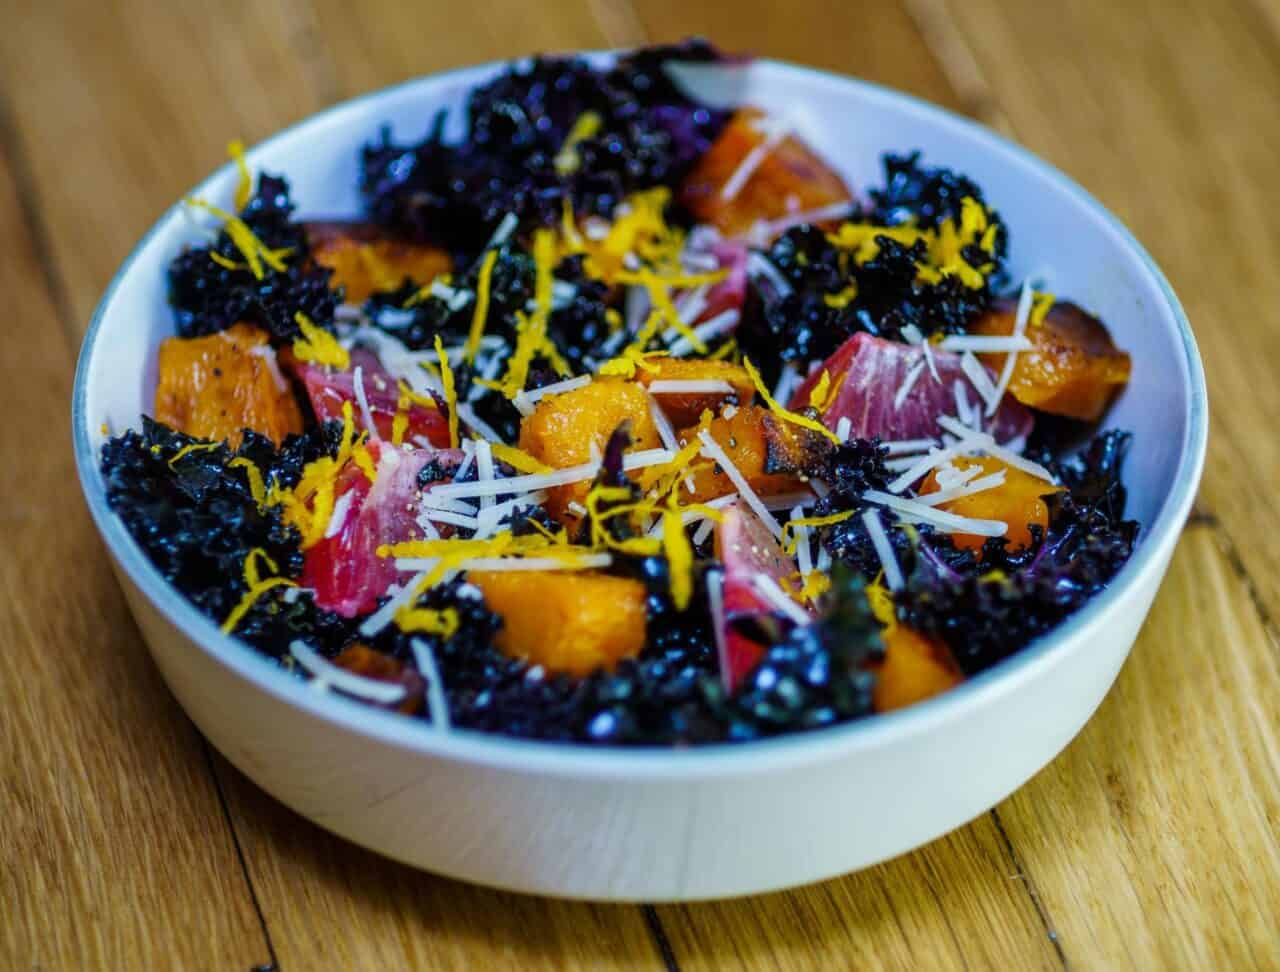 Kale Salad with Butternut Squash and Orange